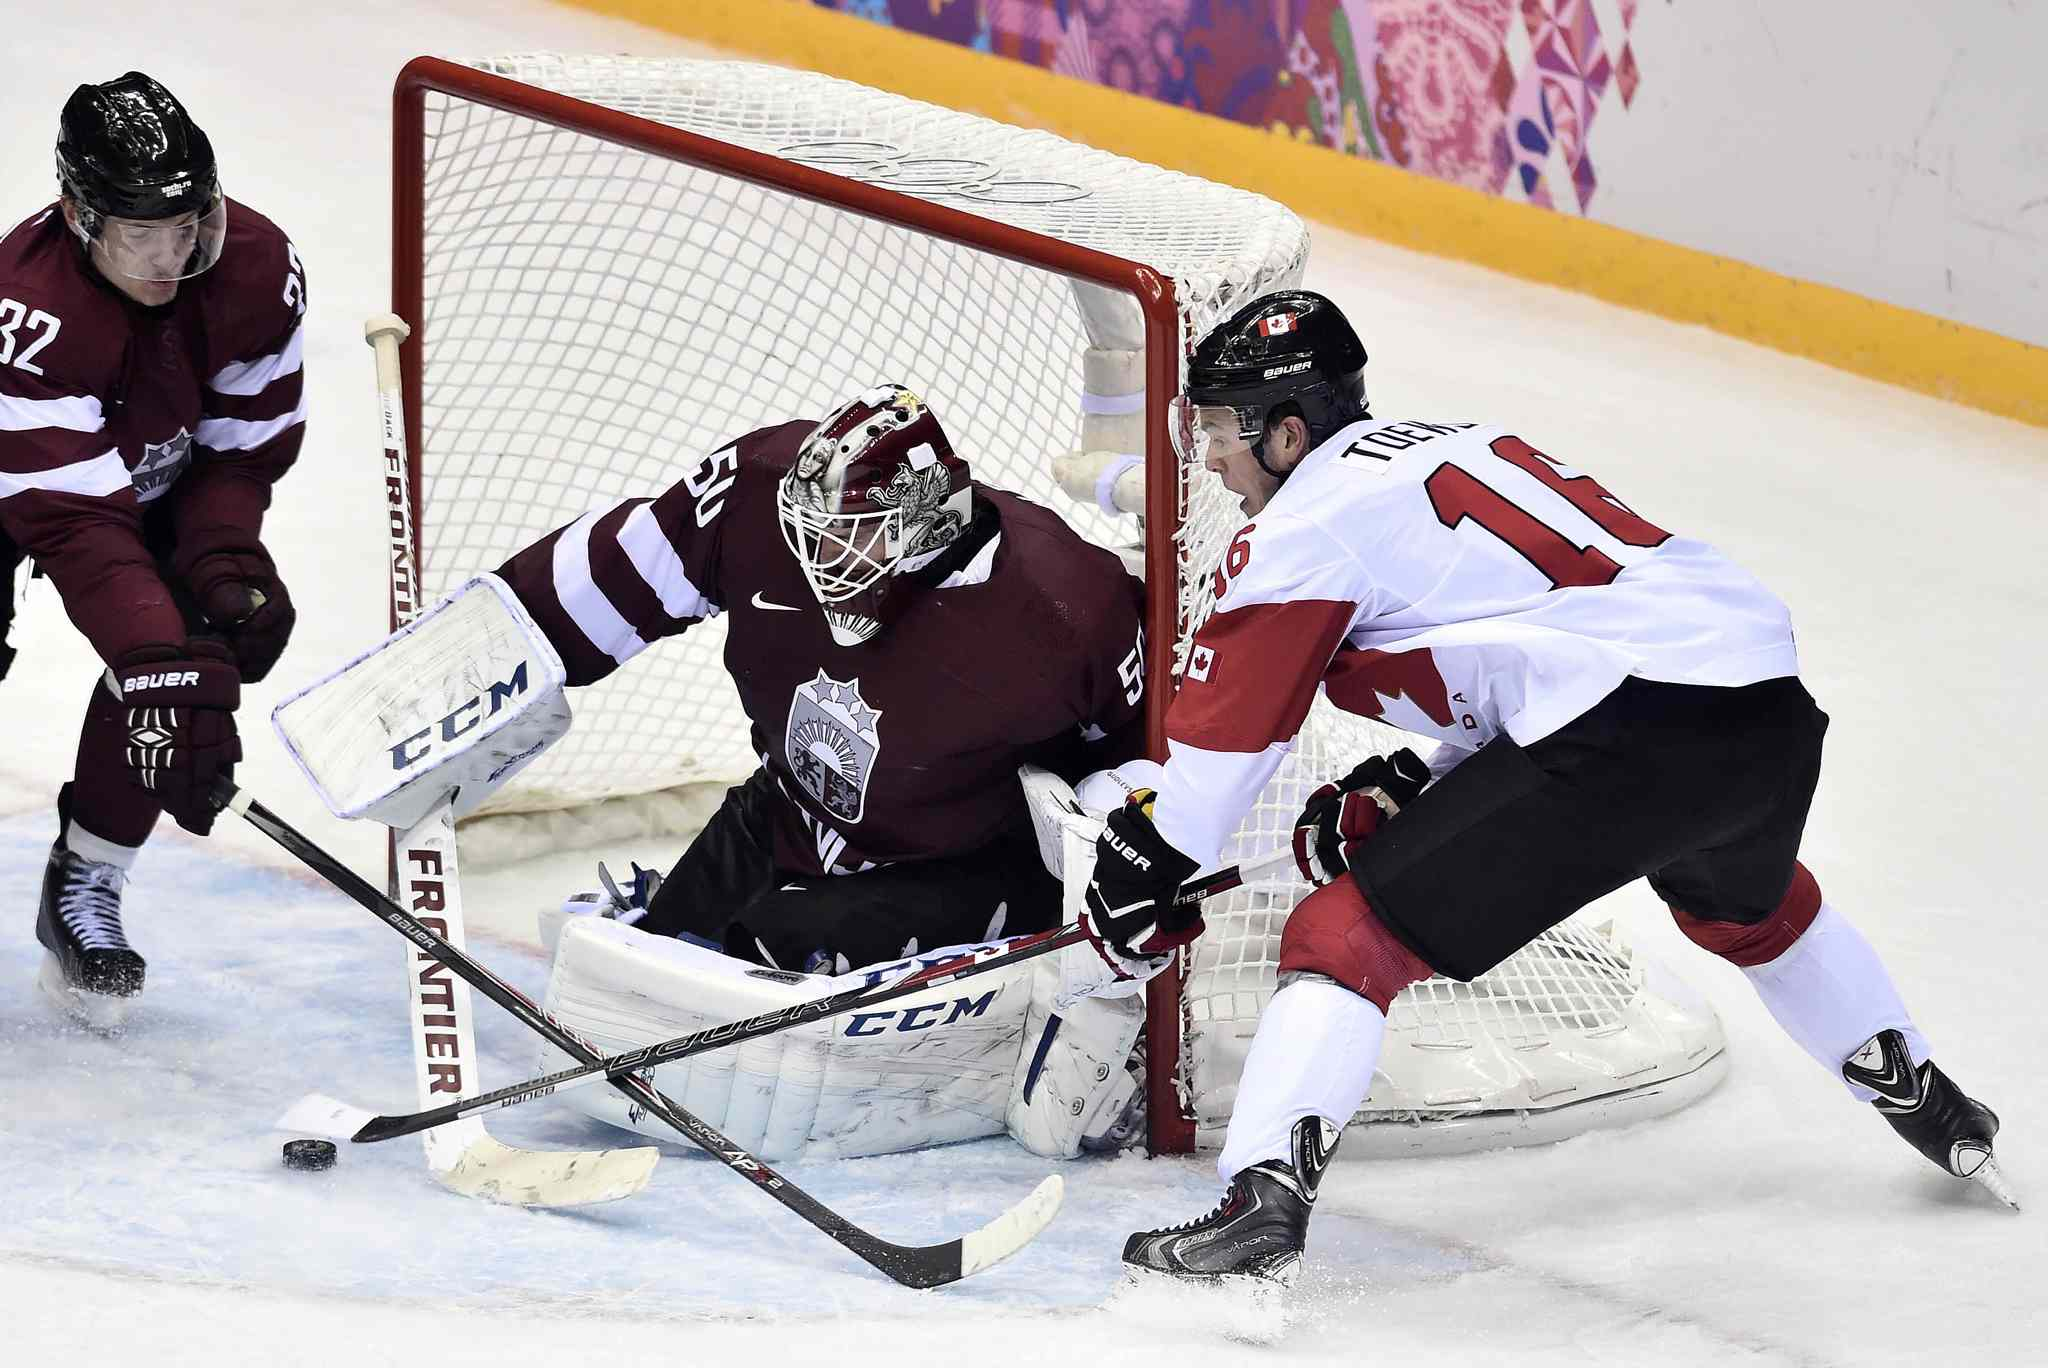 Latvian goaltender Kristers Gudlevskis stymies centre Jonathan Toews on one of 57 Canadian shots on Wednesday night. Team Canada eked out a narrow 2-1 triumph.